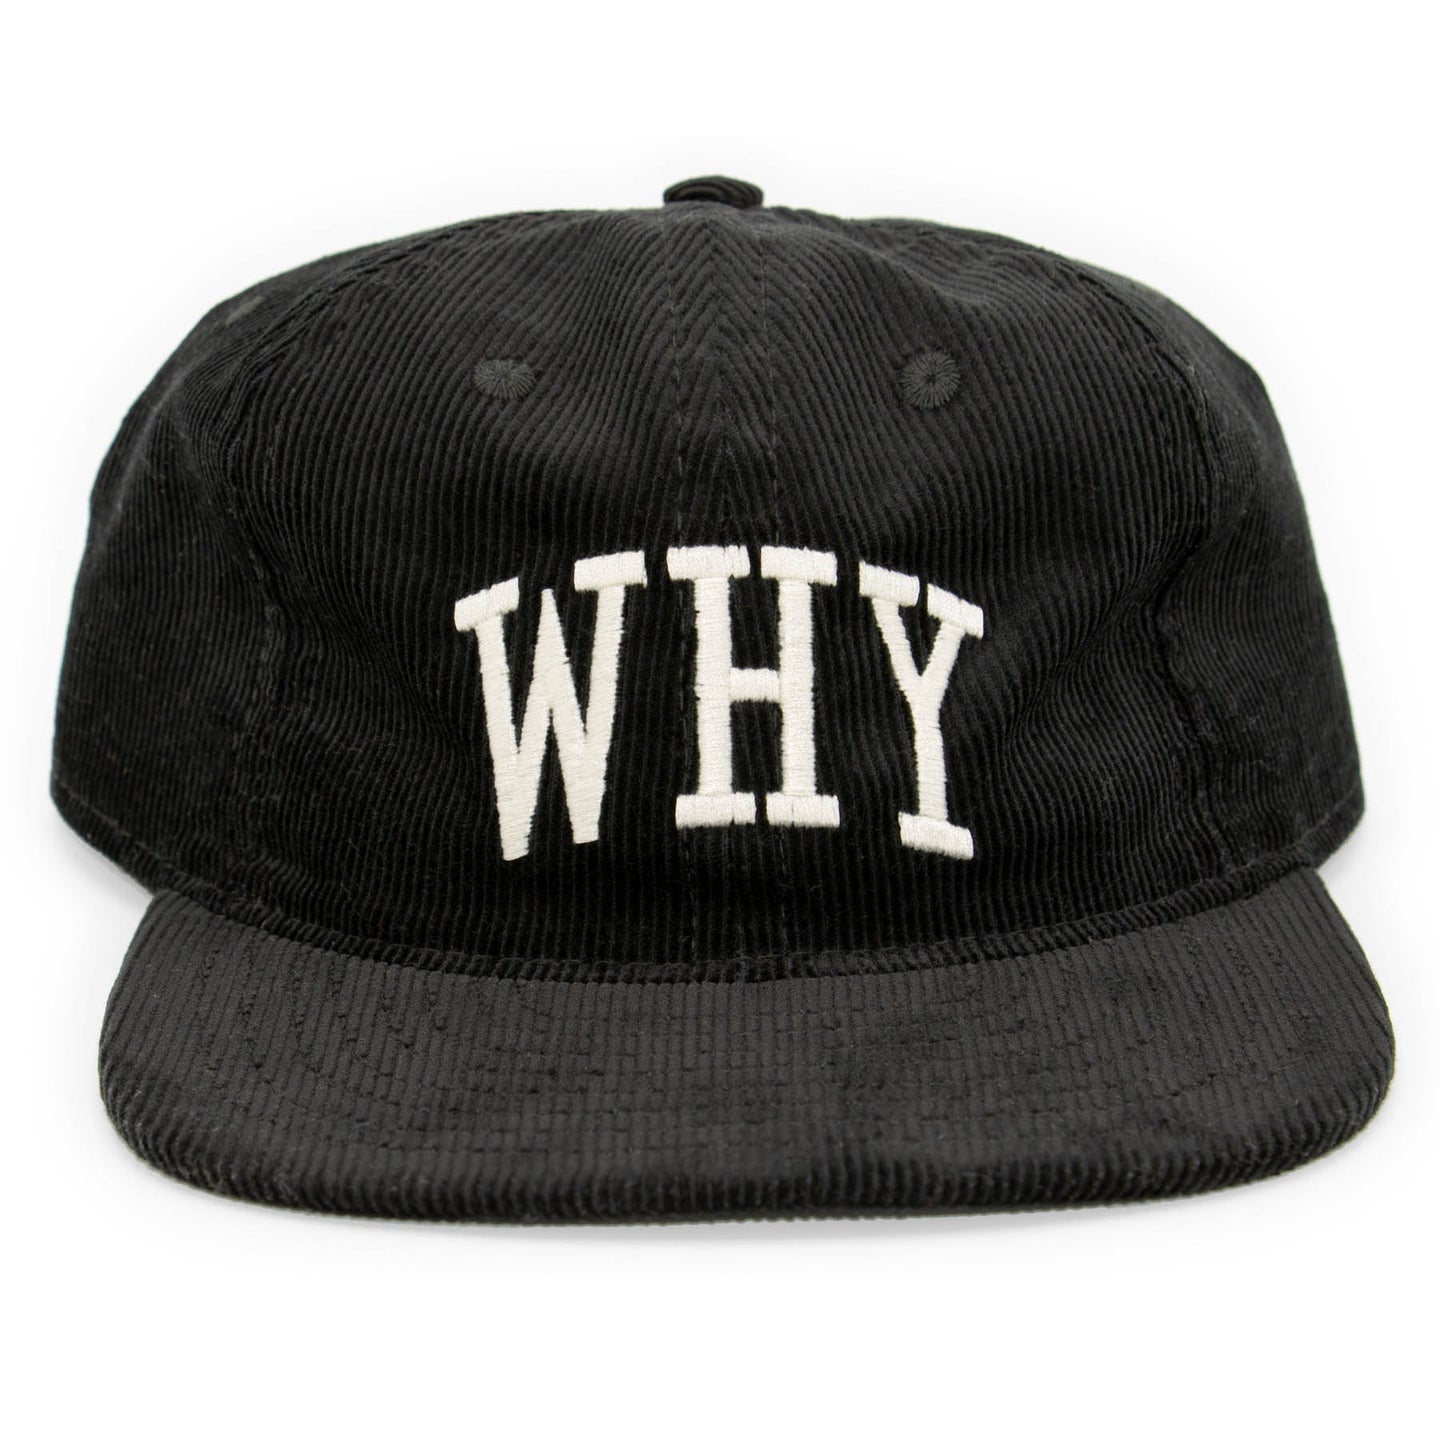 WHY HAT - BLACK - CENTRAL HIGH - HAT CENTRAL HIGH BRAND